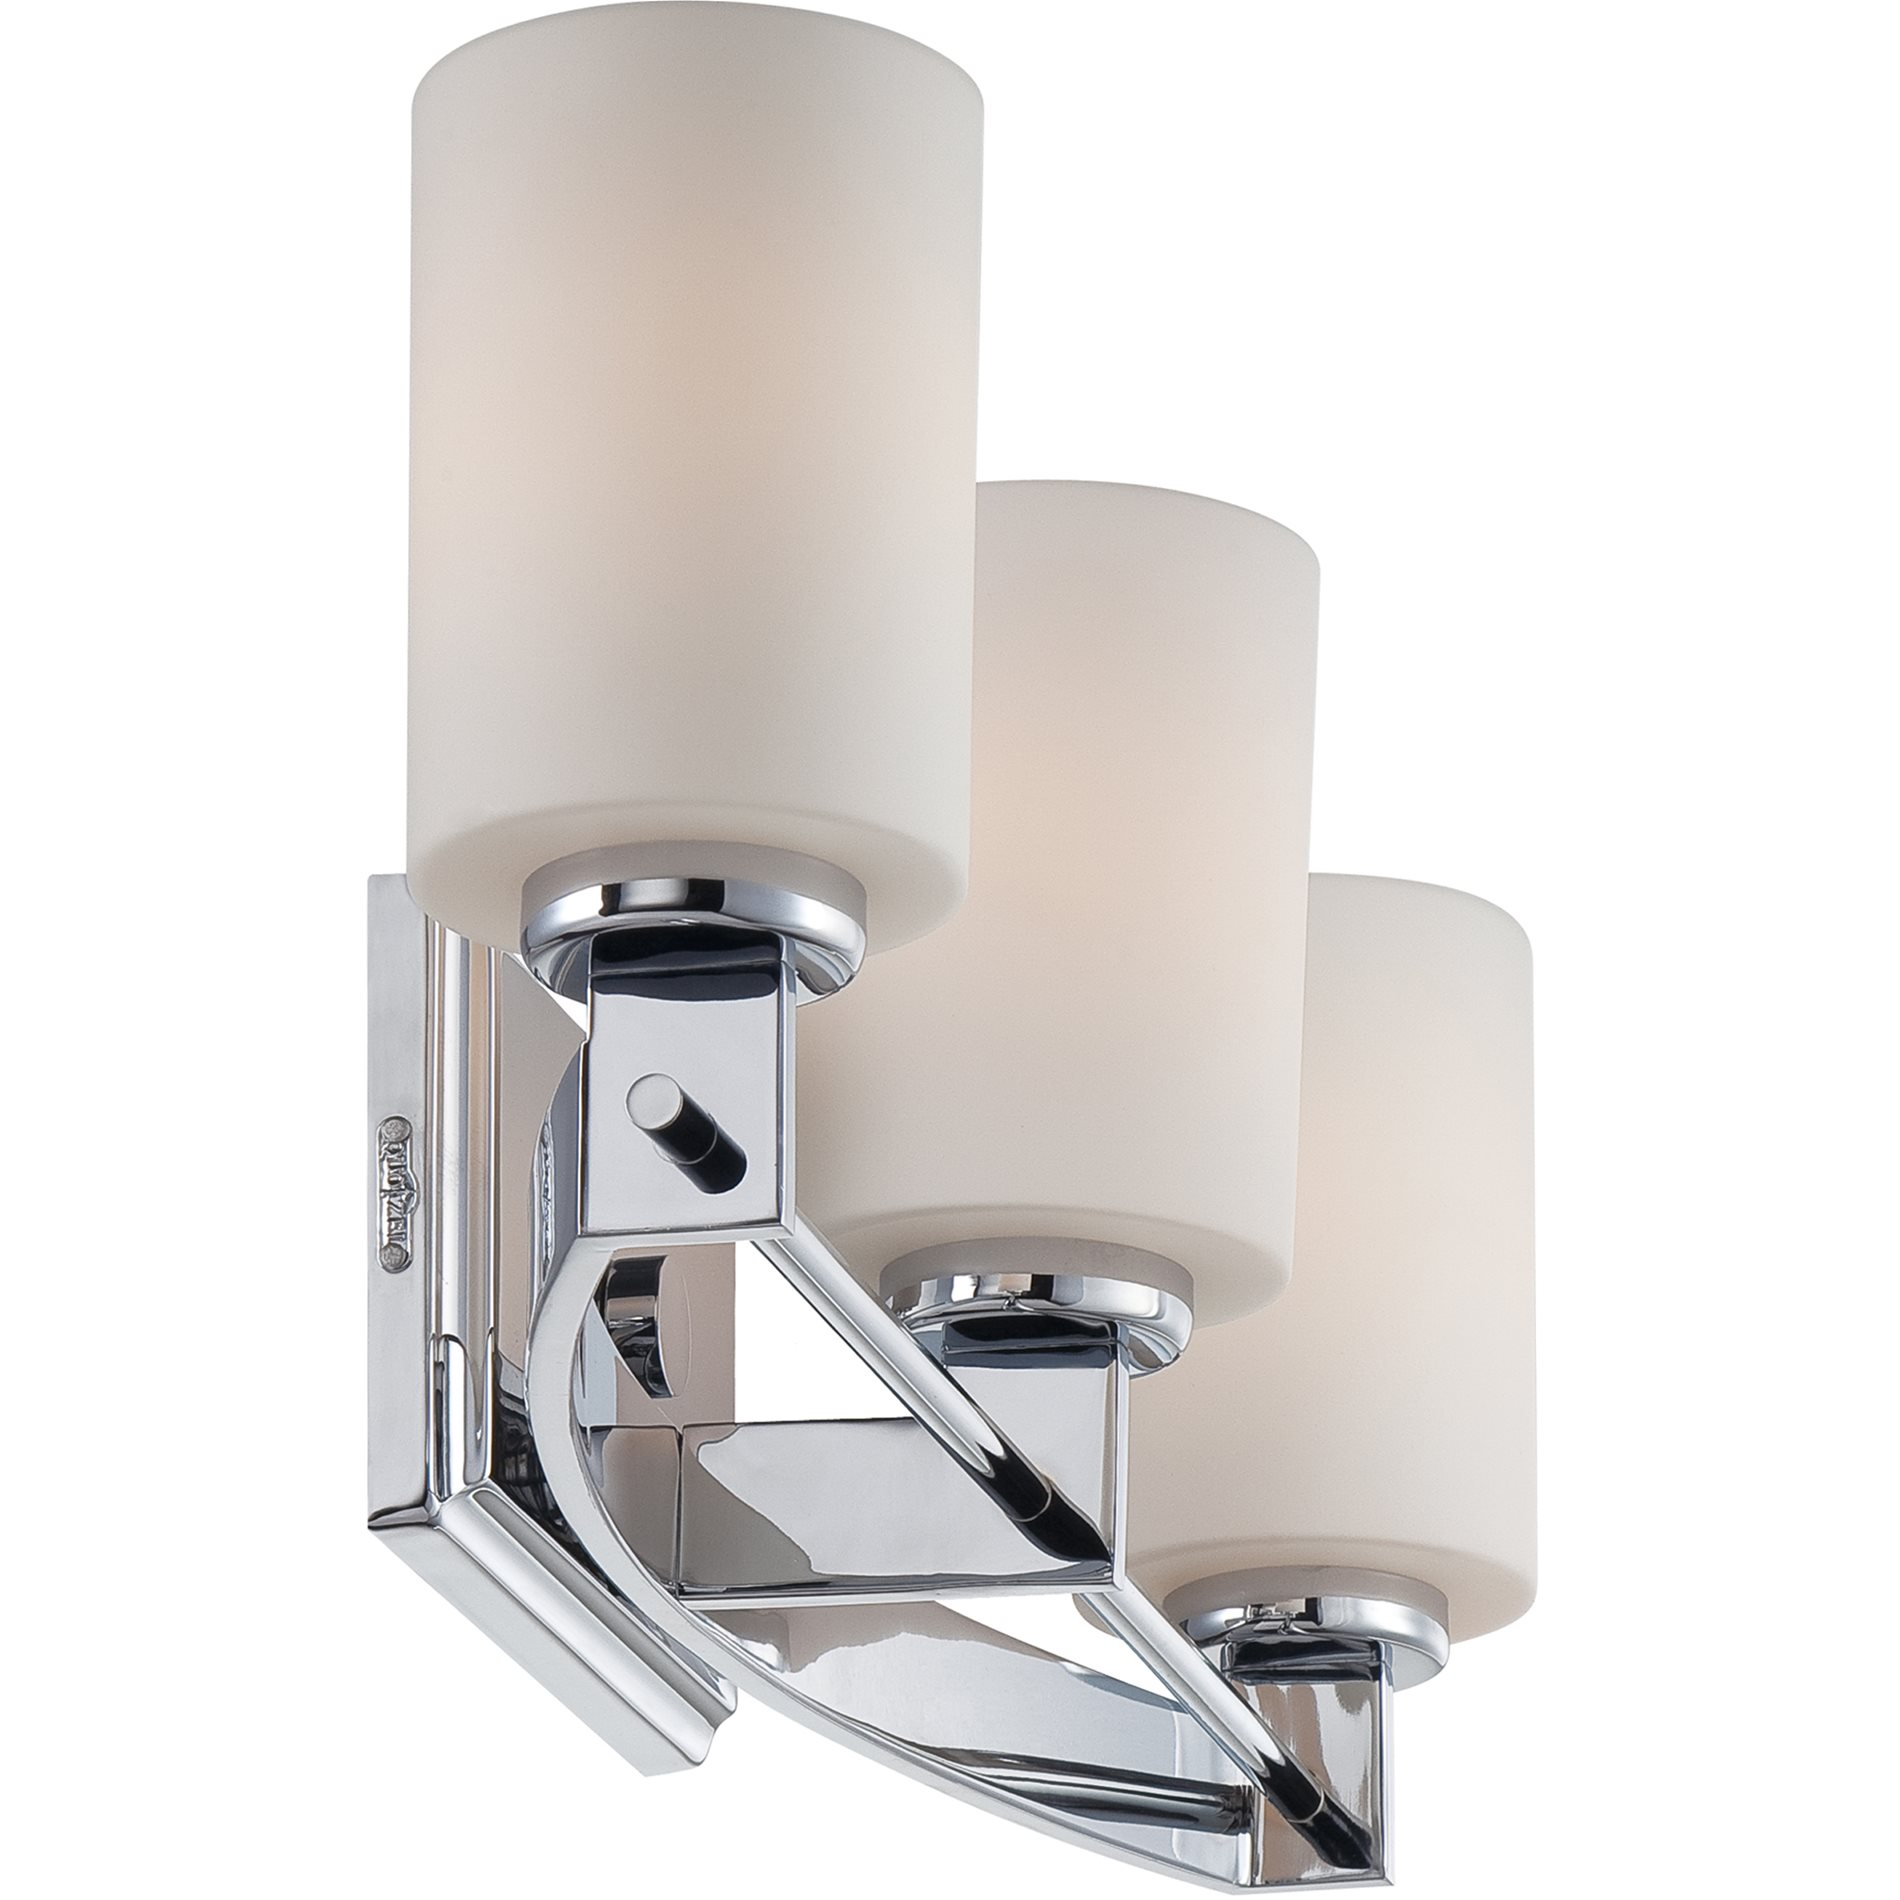 Quoizel Ty8603c Taylor Contemporary Bathroom Vanity Light Qz Ty8603c